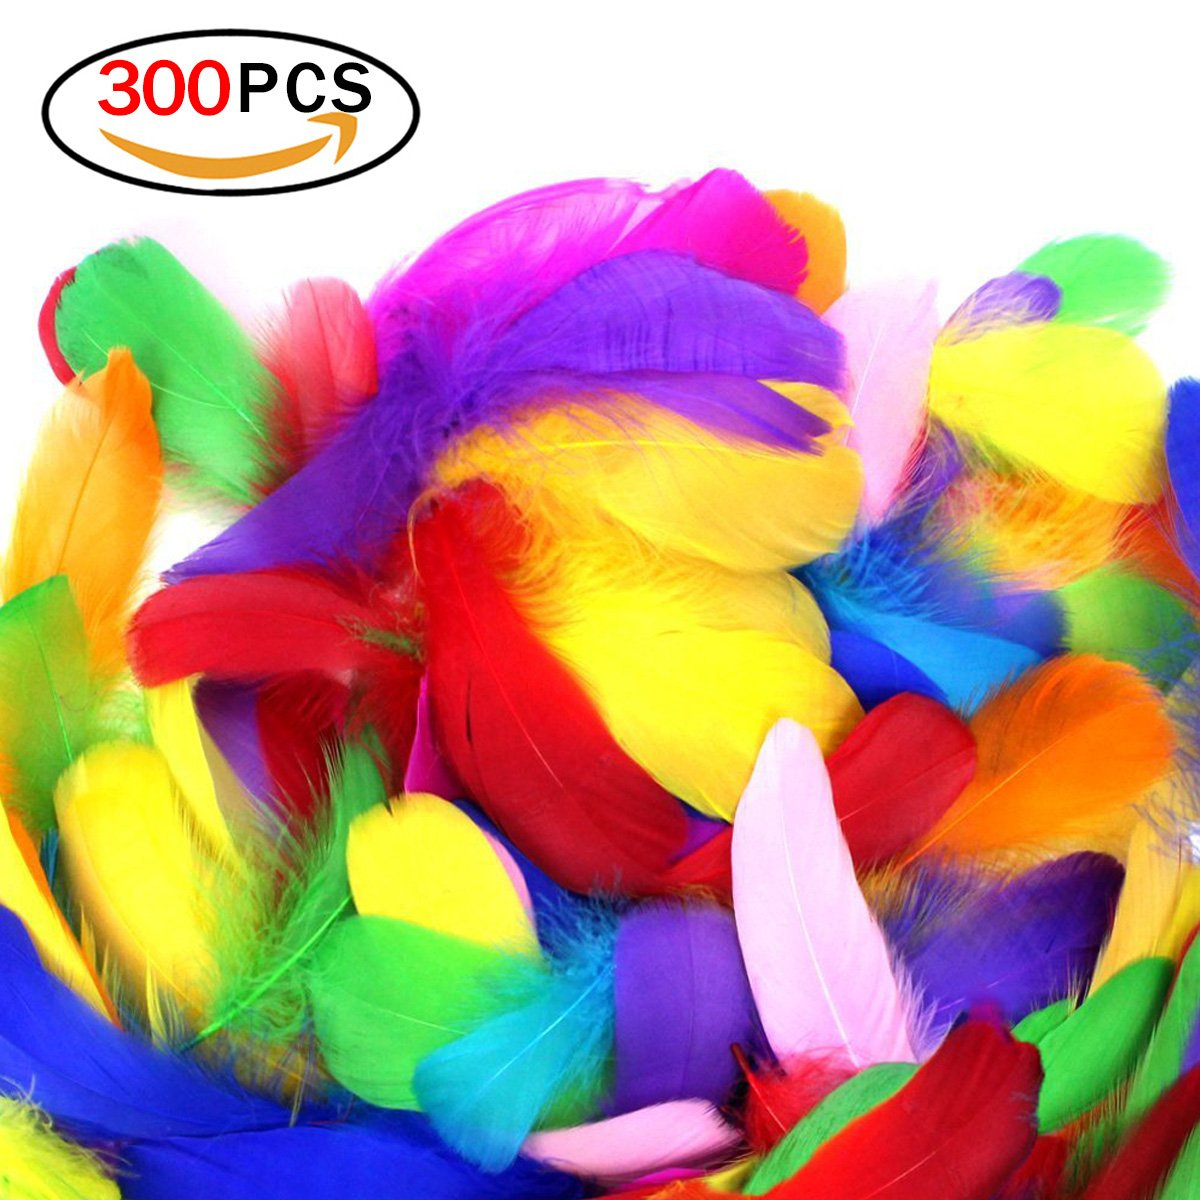 Rocita 300pcs DIY Colorful Feathers Assorted Color Craft Supplies for Arts Crafts Sewing